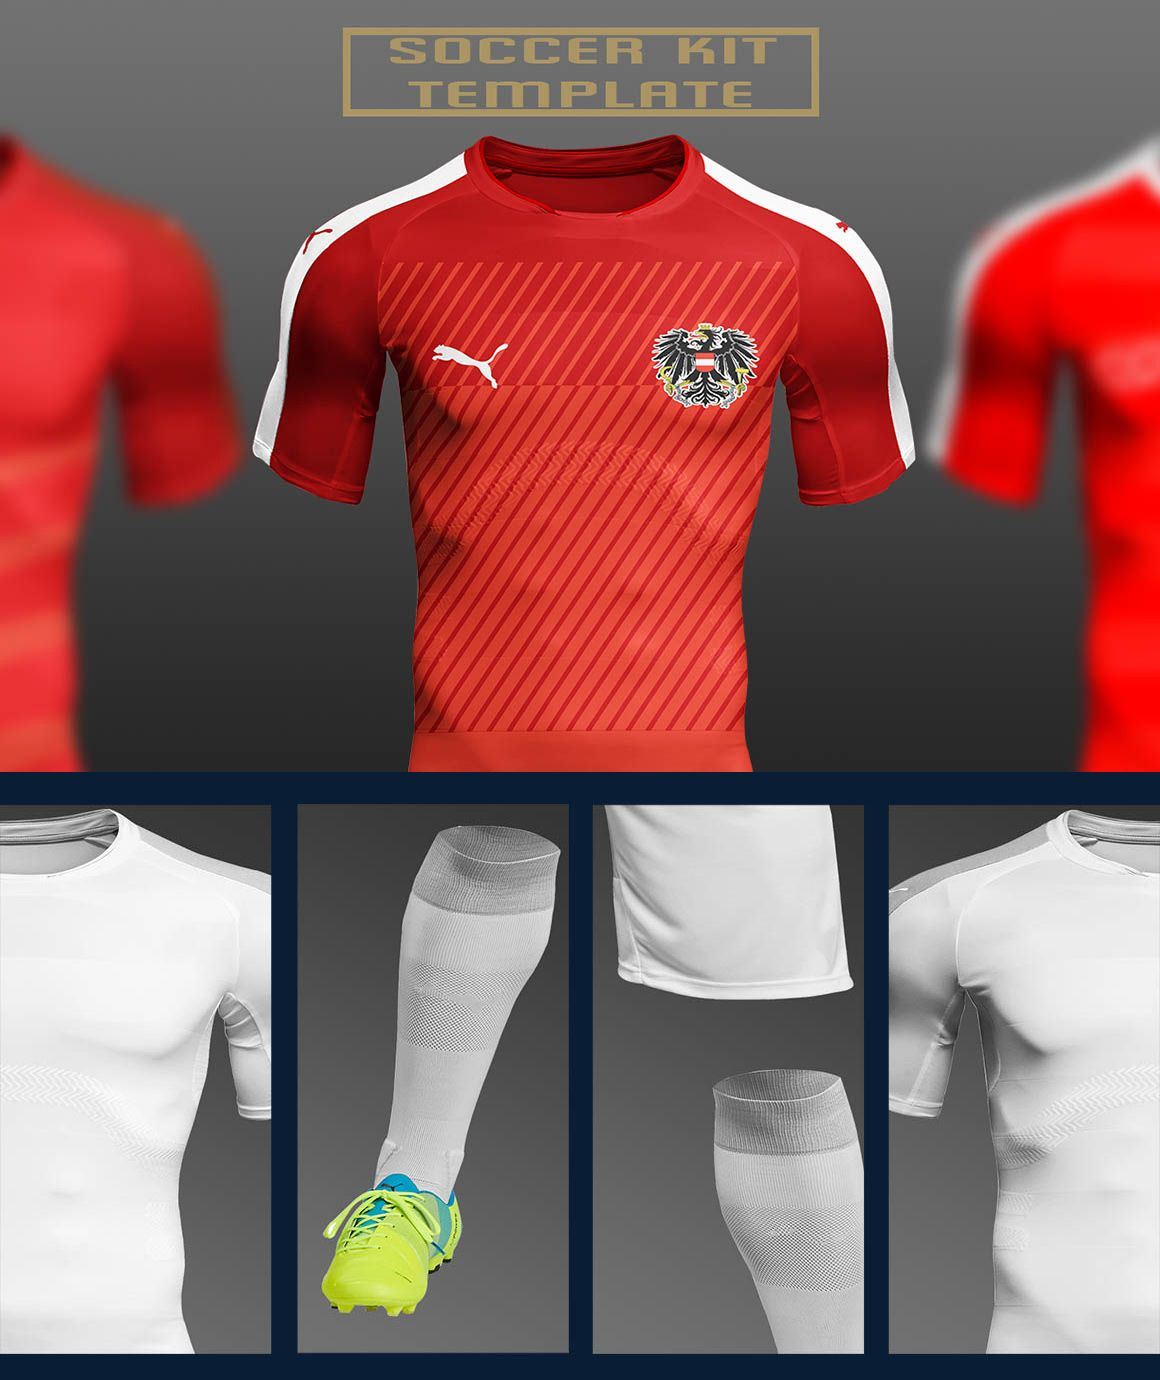 Download Complete Soccer Sports Kit Mockup Psd Psfiles Clothing Mockup Shirt Mockup Mockup Psd